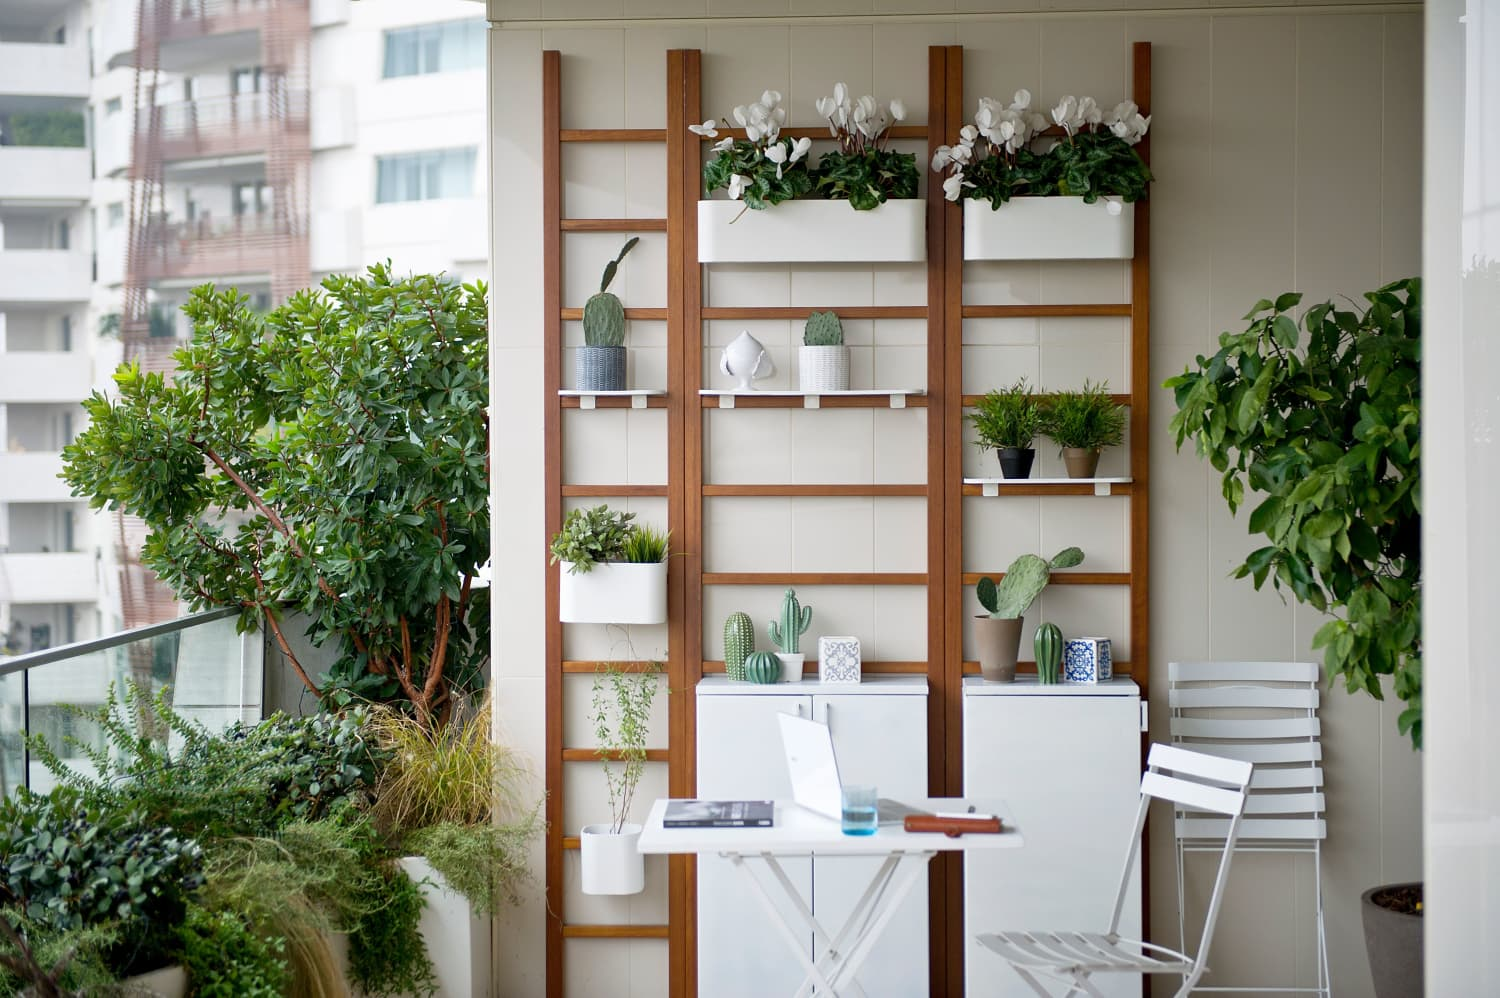 These Chic Wooden Ladders Are The Perfect Solution For Making the Most of Small Outdoor Spaces